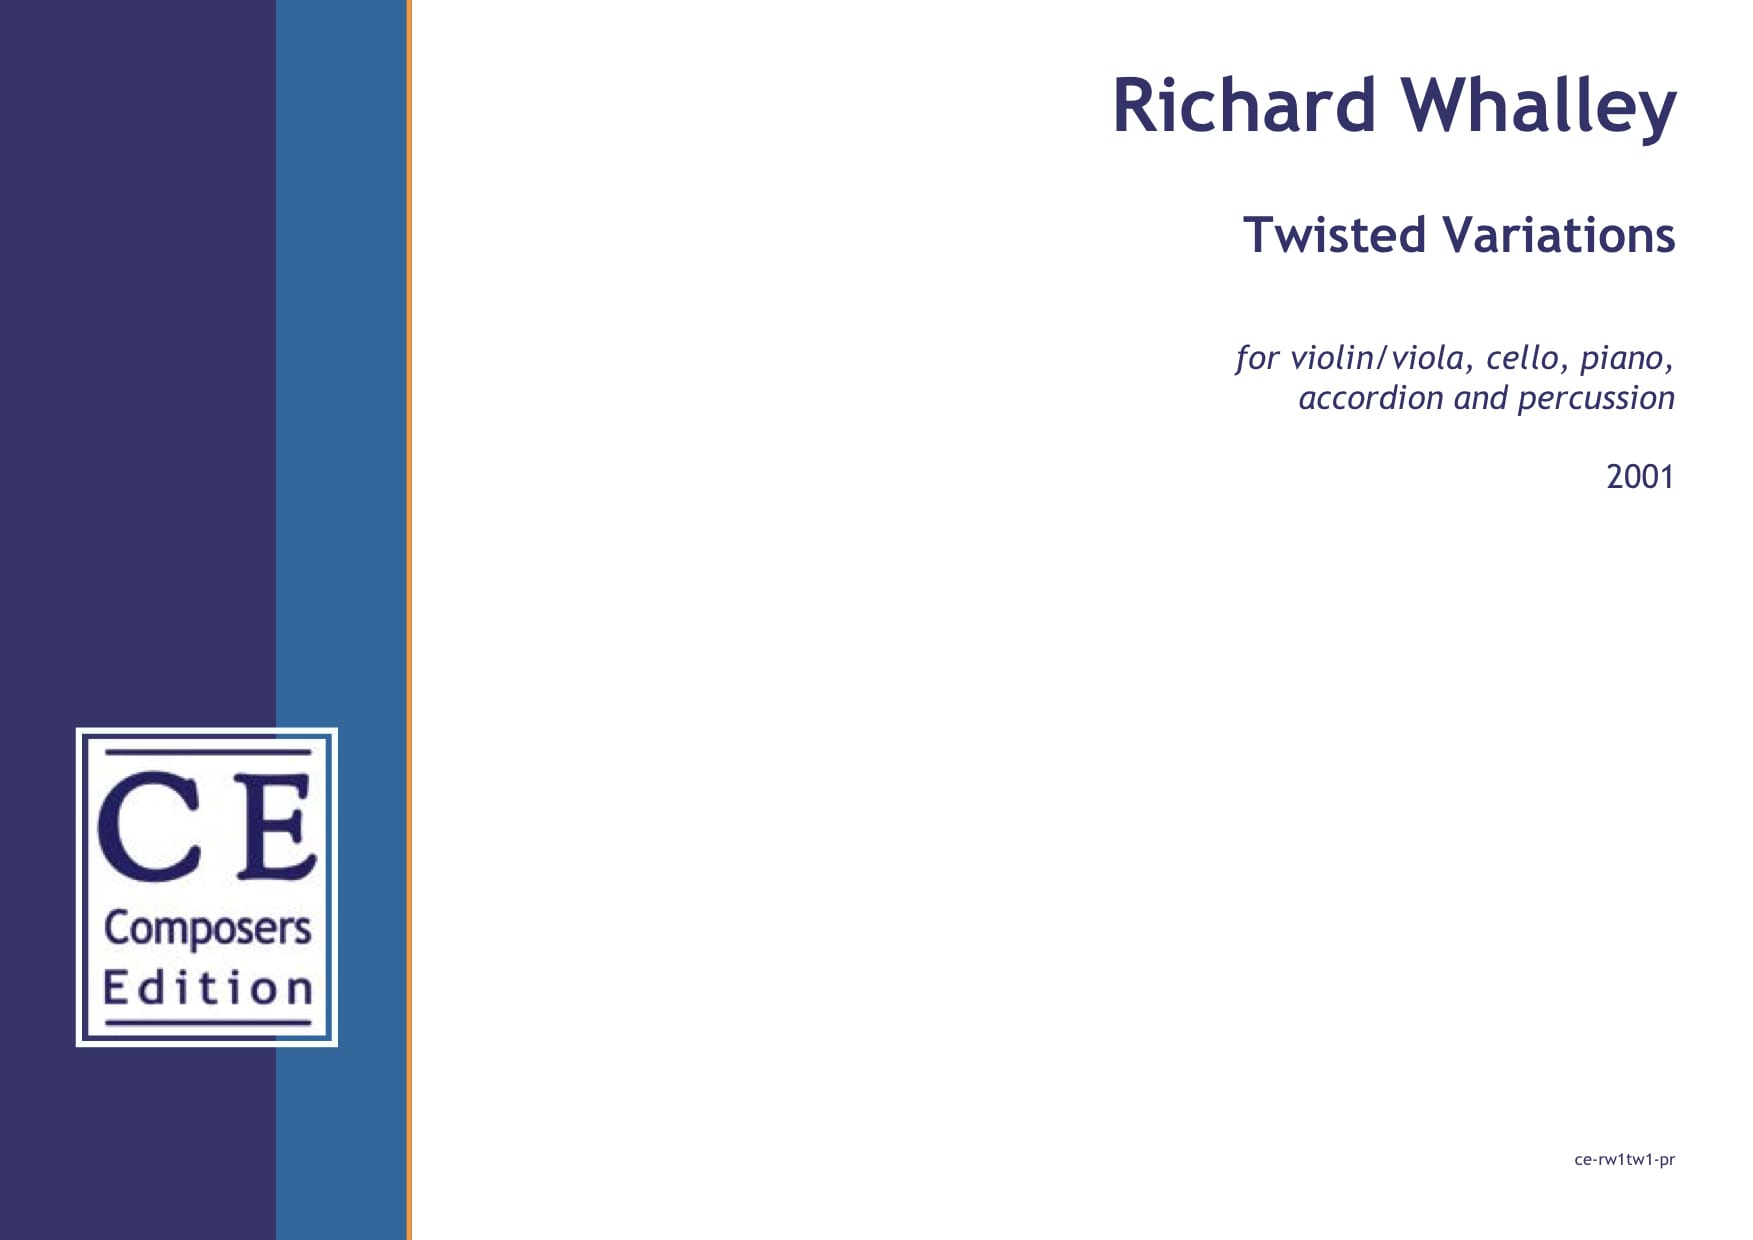 Richard Whalley: Twisted Variations for violin/viola, cello, piano, accordion and percussion